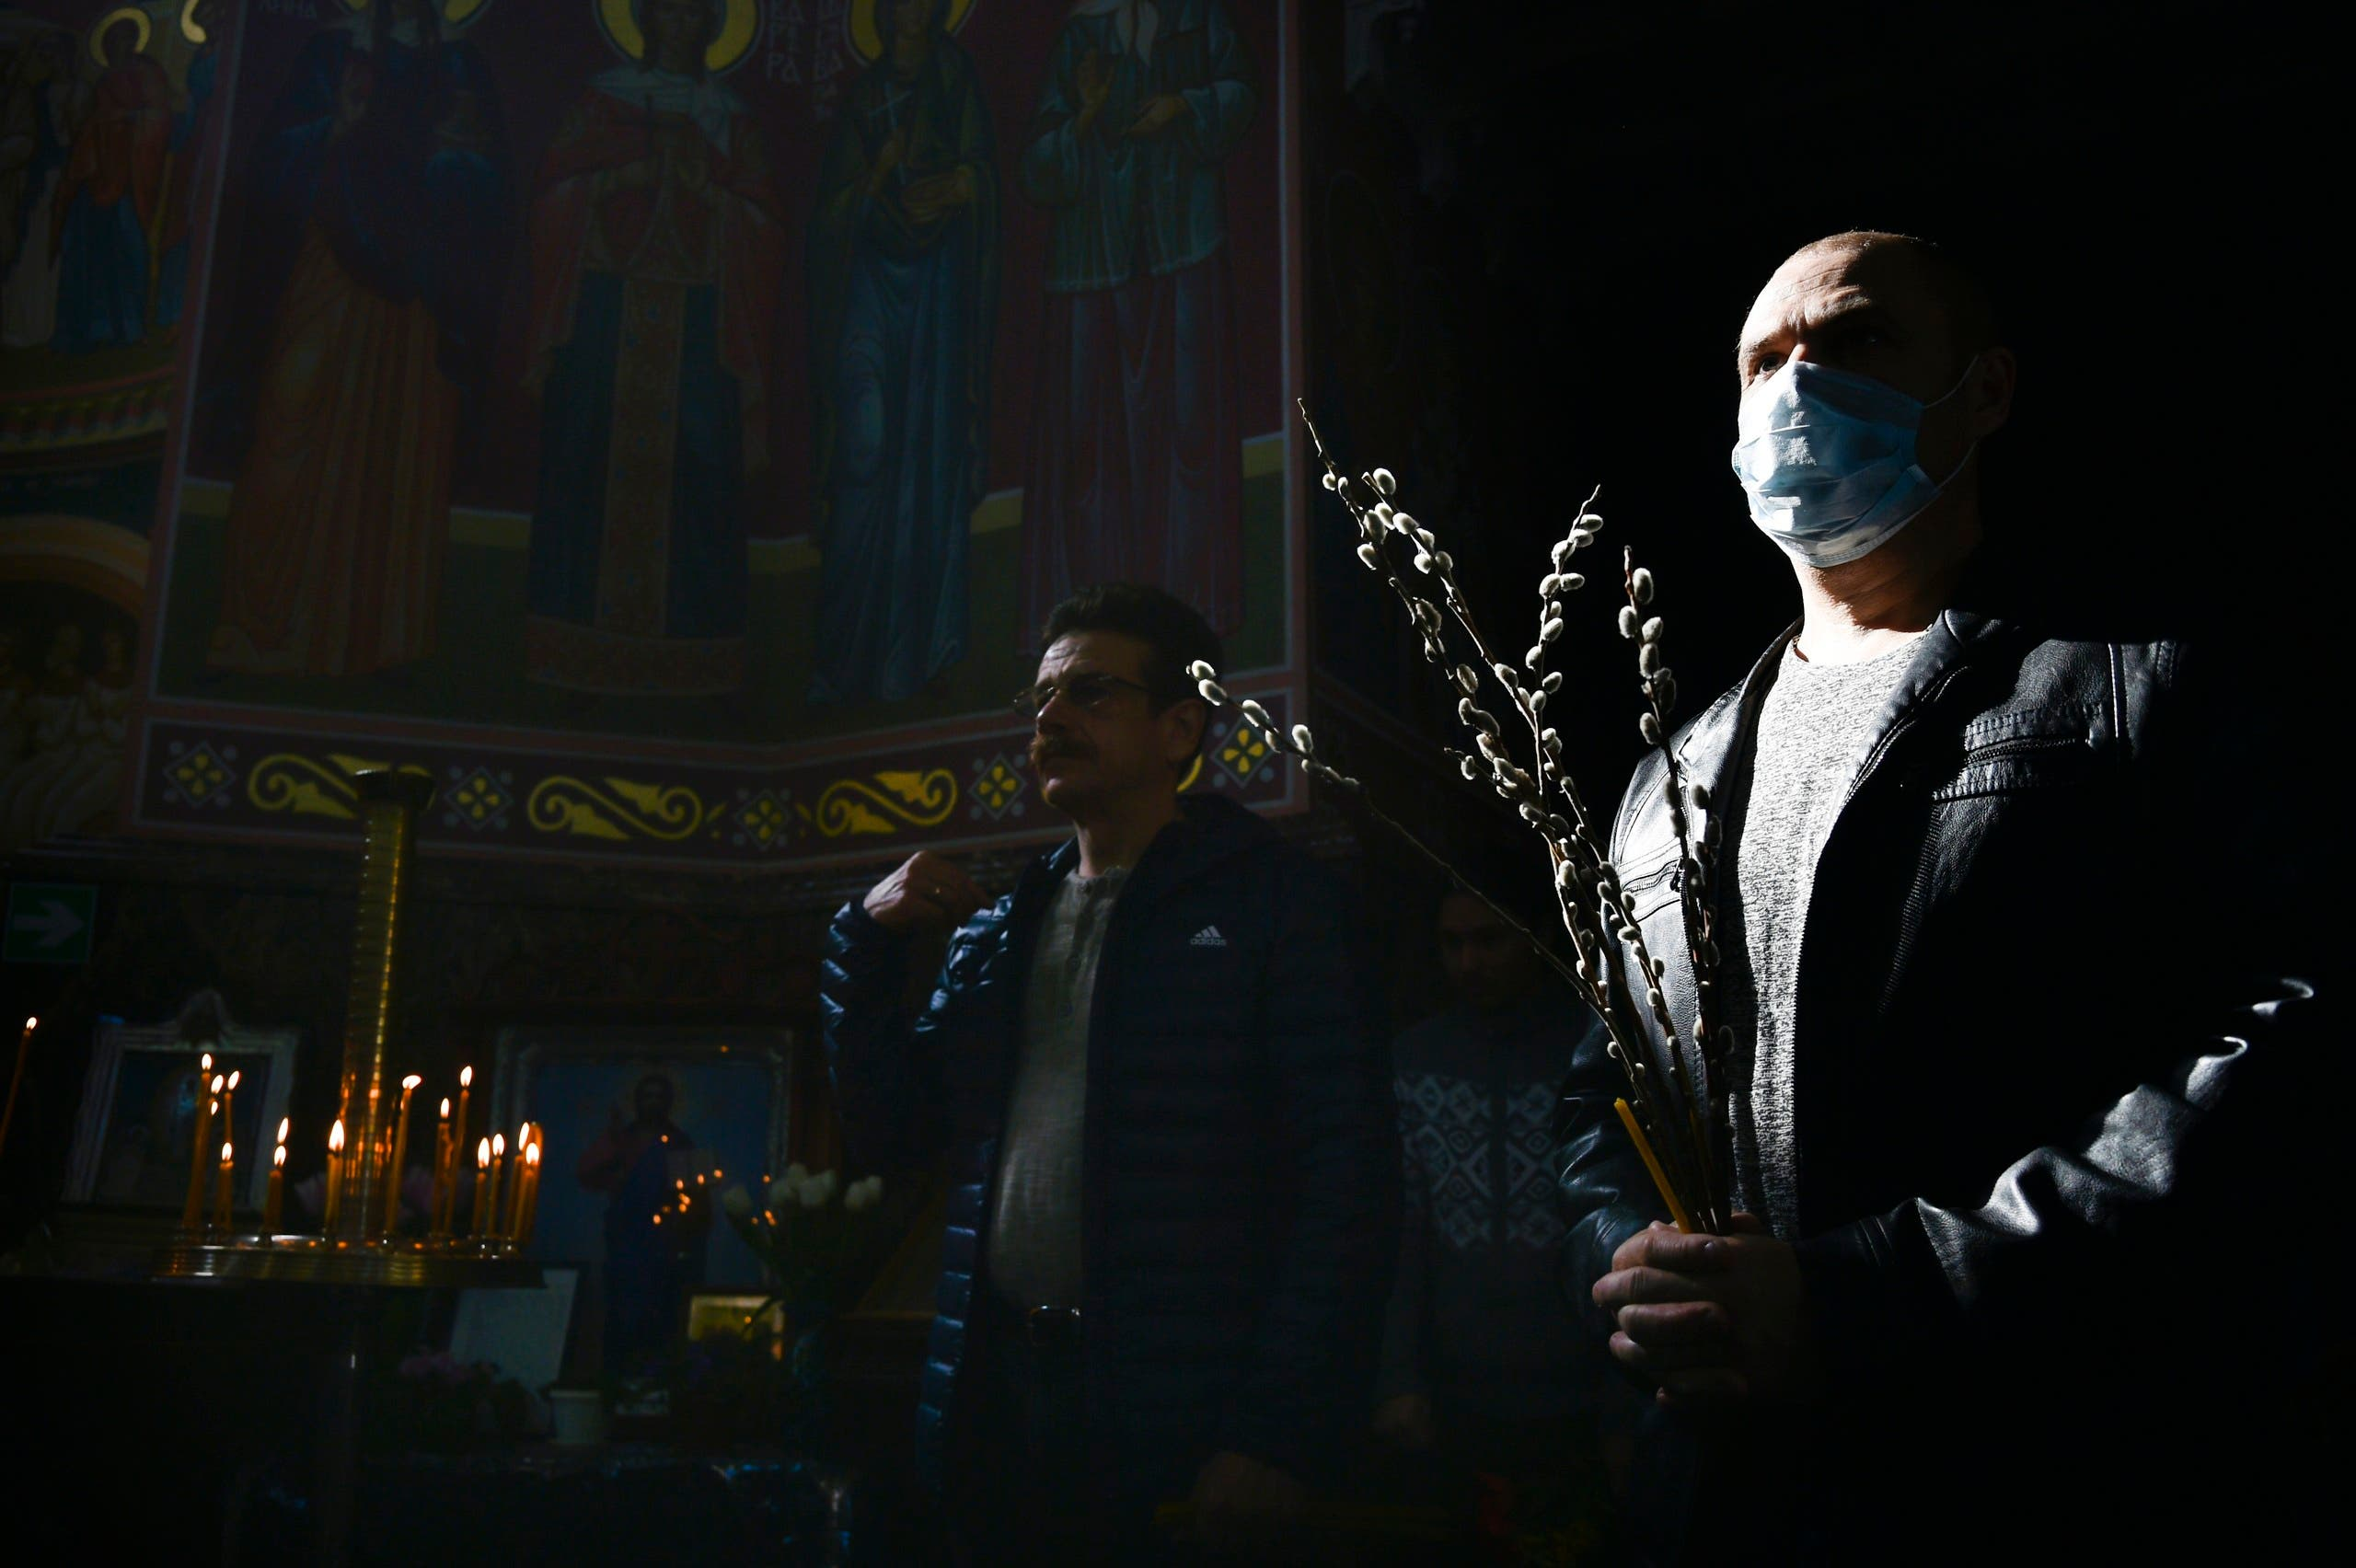 Orthodox Church believers, some wearing face masks to protect from coronavirus, attend a religion service inside a church celebrating Orthodox Palm Sunday in Yevpatoria, Crimea, on April 12, 2020. (AP)